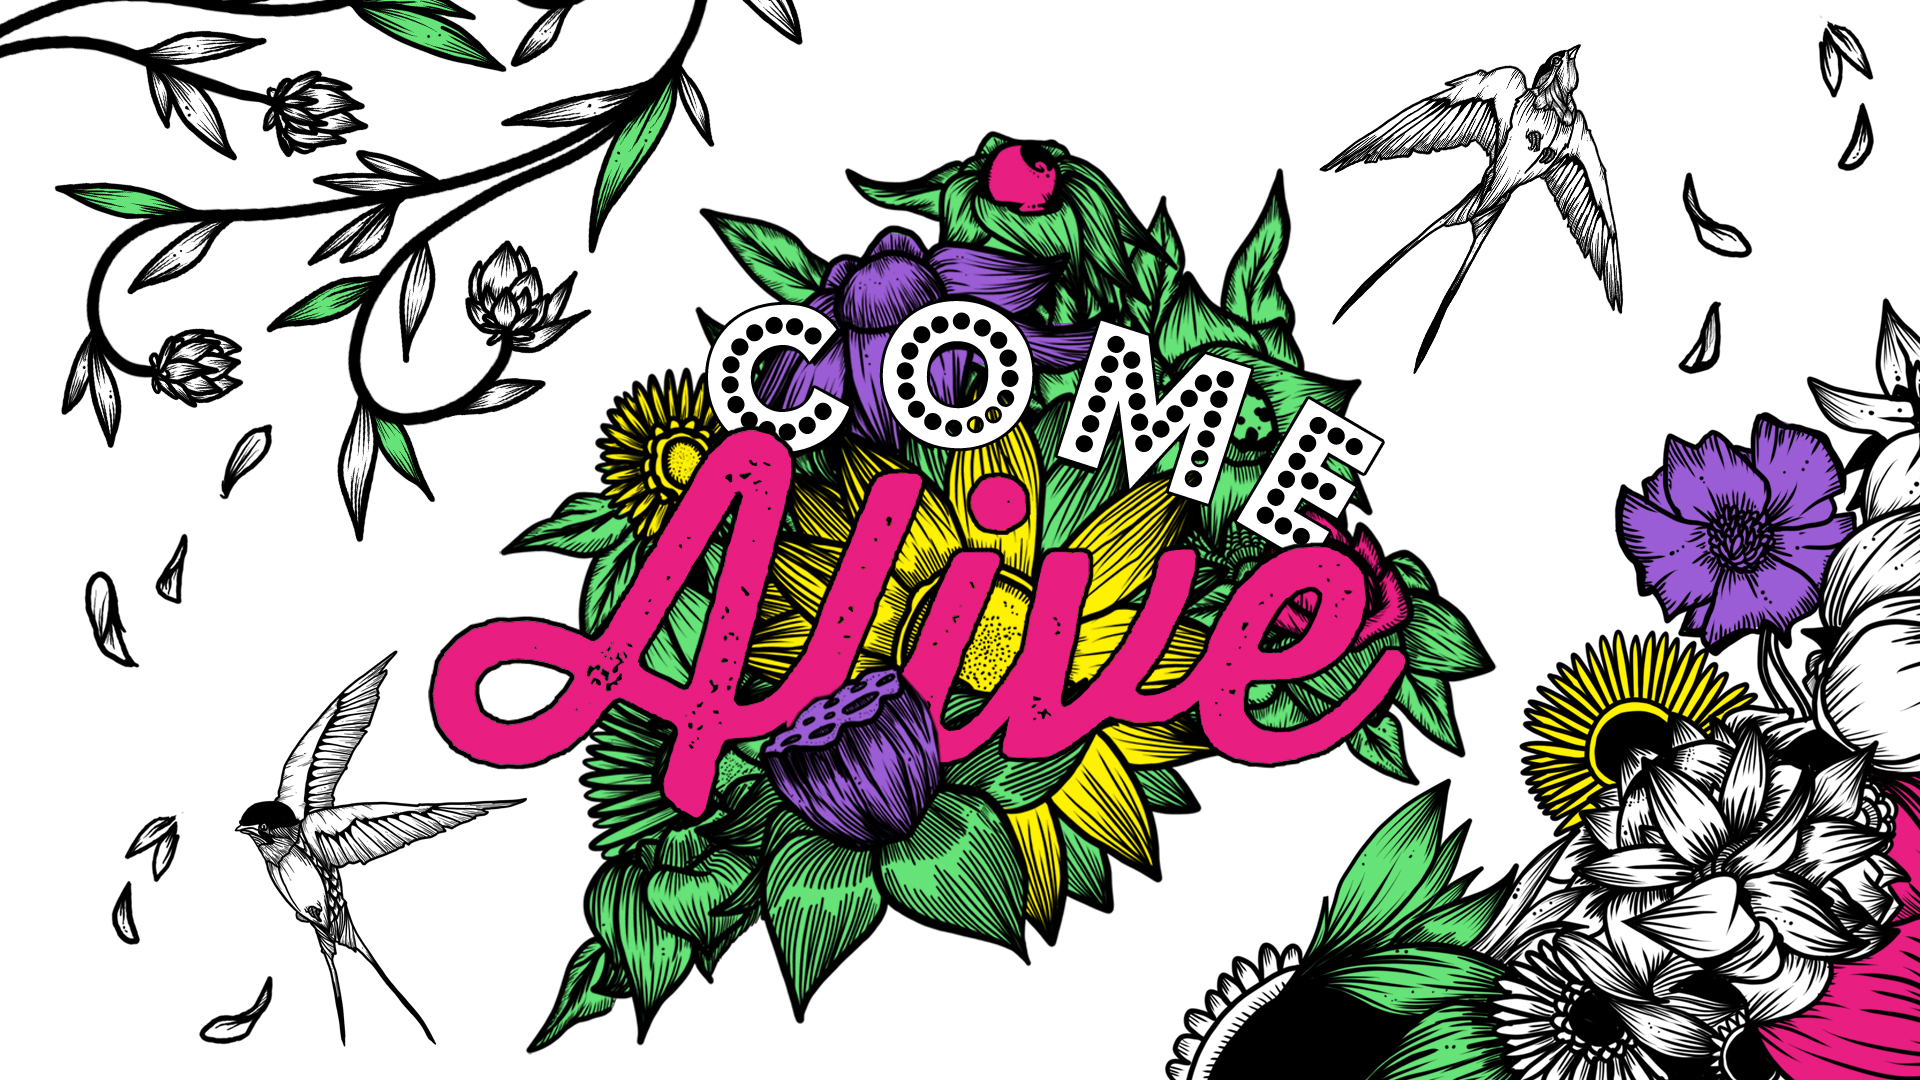 Come-Alive_Series-Title.jpg